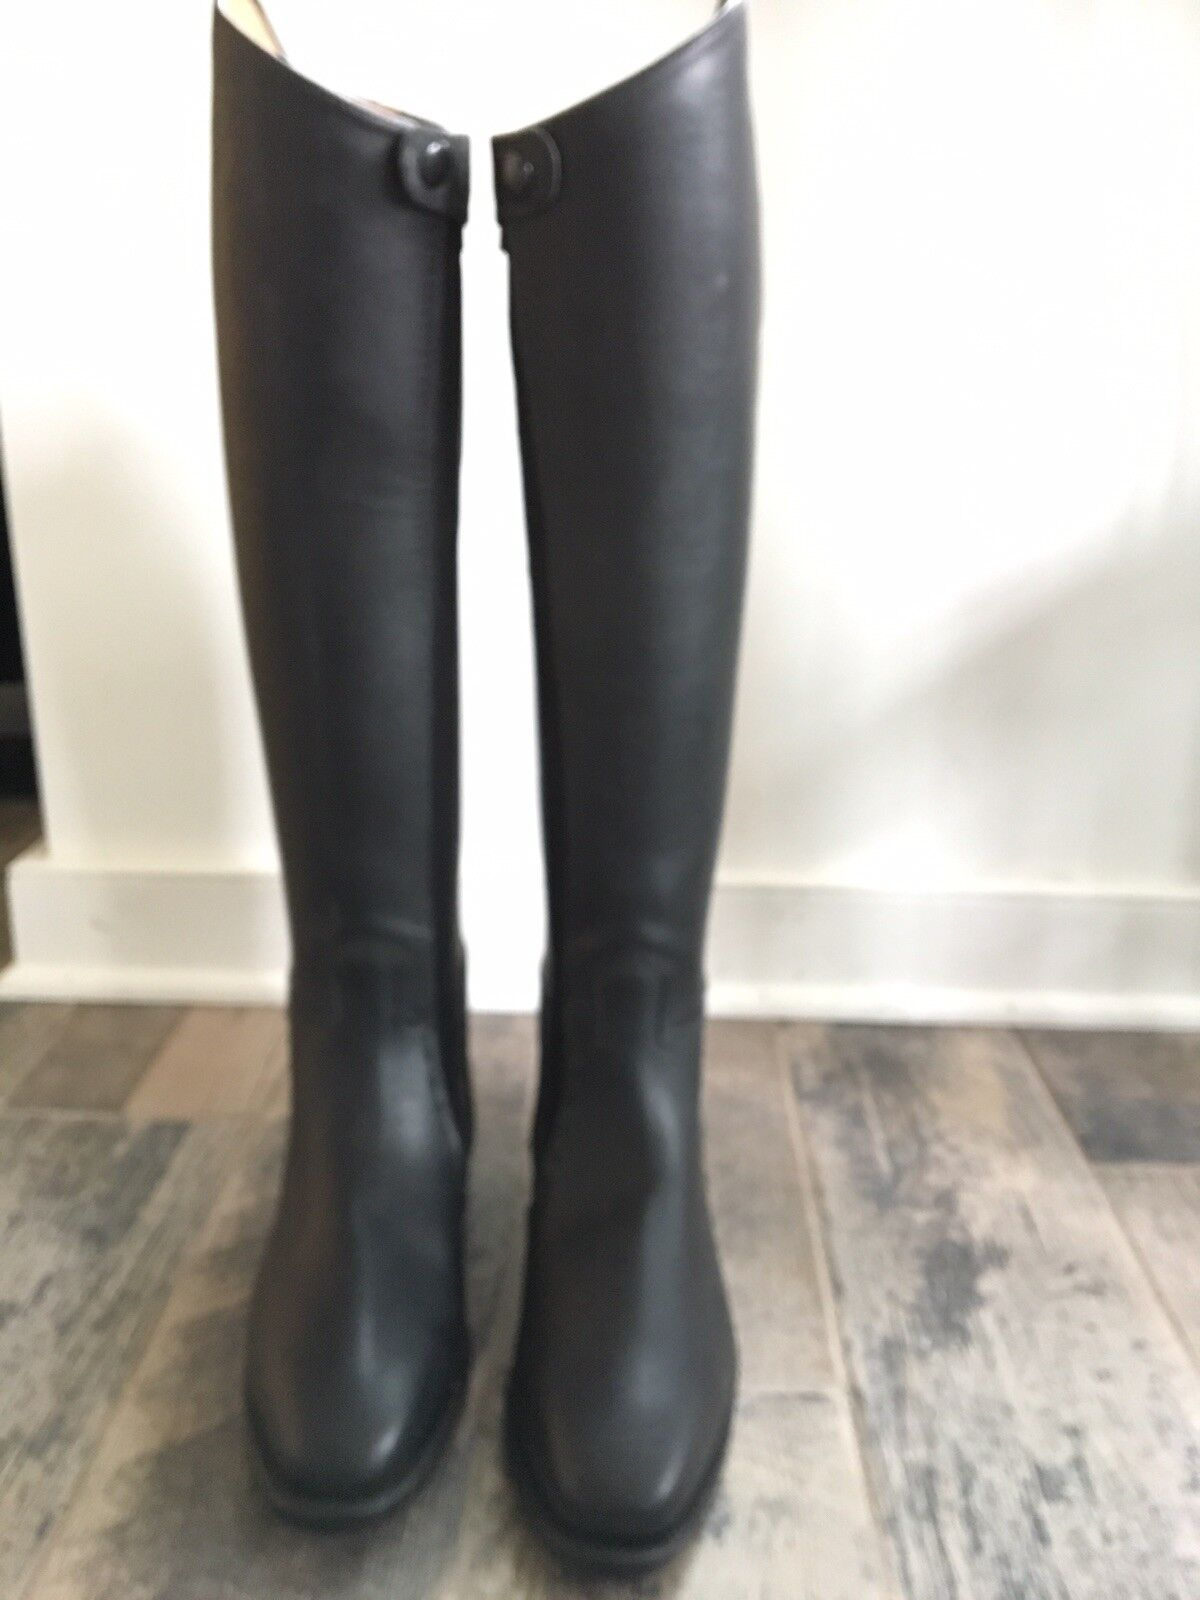 Regal Stedge New Womans Dressage Boots W Ykk Cavallo Size Us 10 Xhe Weltmeister